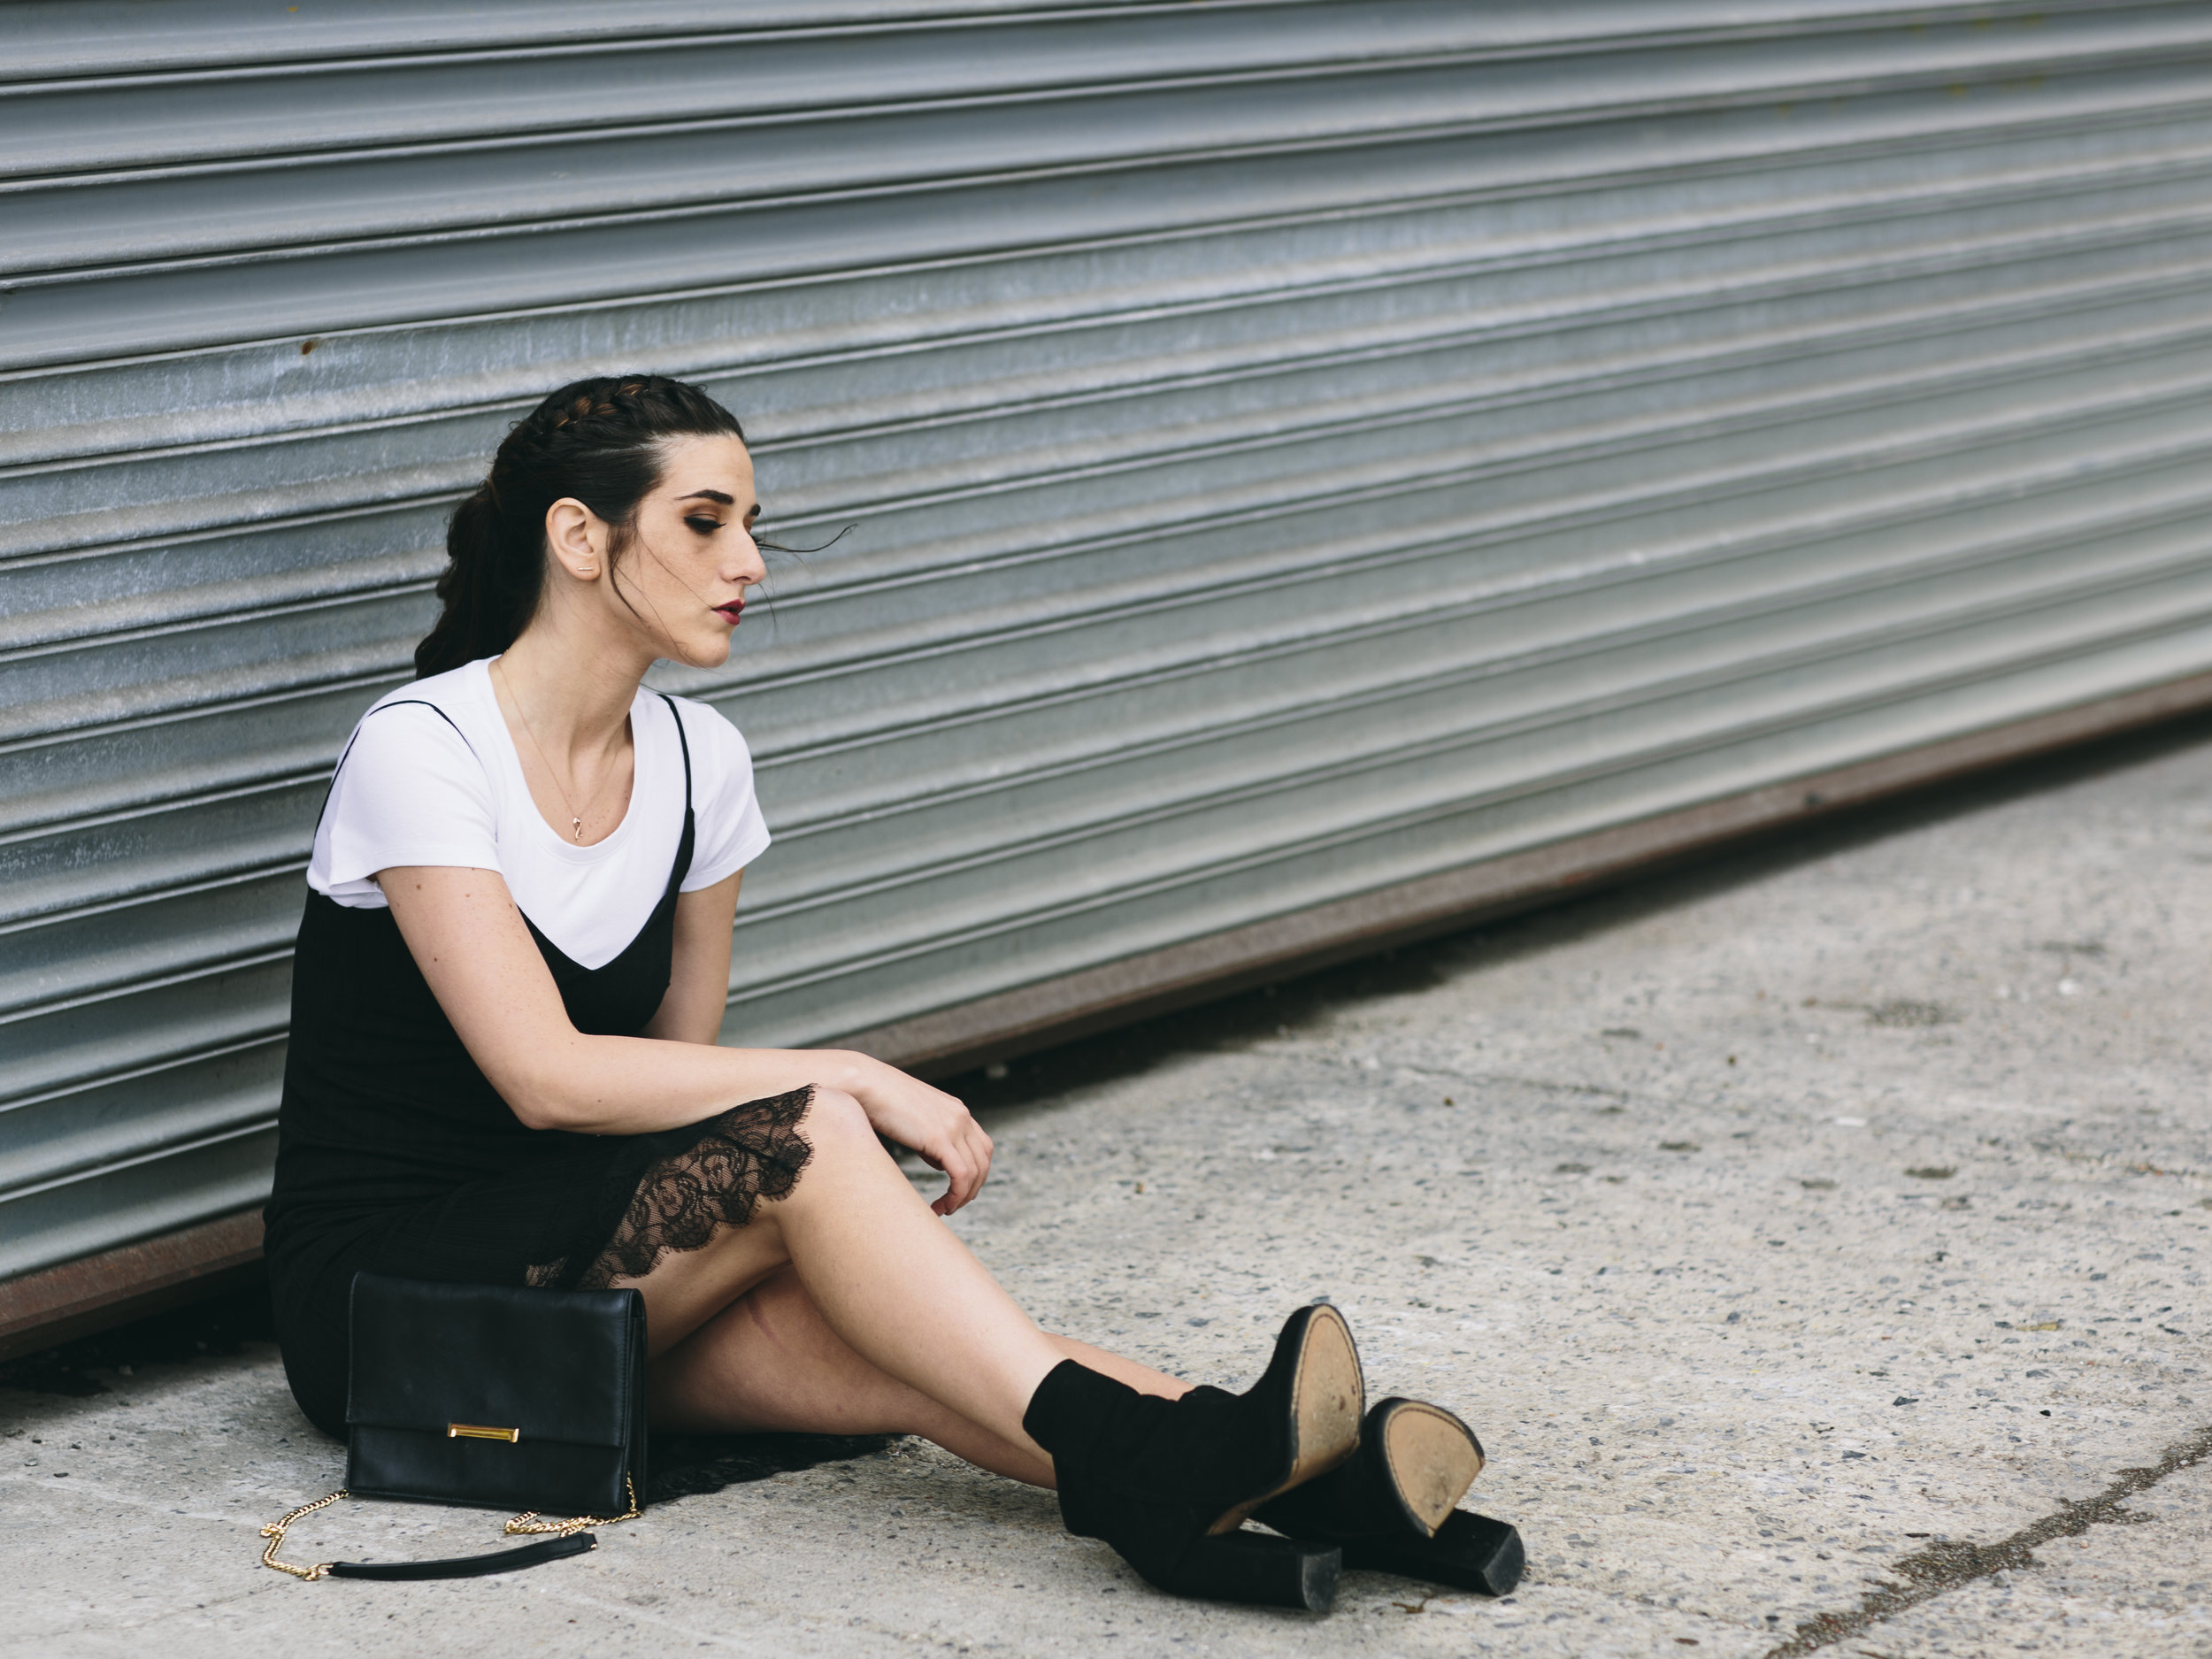 Black Lace Slip Dress Over White Tee Louboutins & Love Fashion Blog Esther Santer NYC Street Style Blogger Outfit OOTD Trendy Booties M4D3 Online Shopping Girl Women Fall Look Ivanka Trump Cocktail Bag Watch Edgy Wear Ponytail Hair Inspo Fashionista.jpg